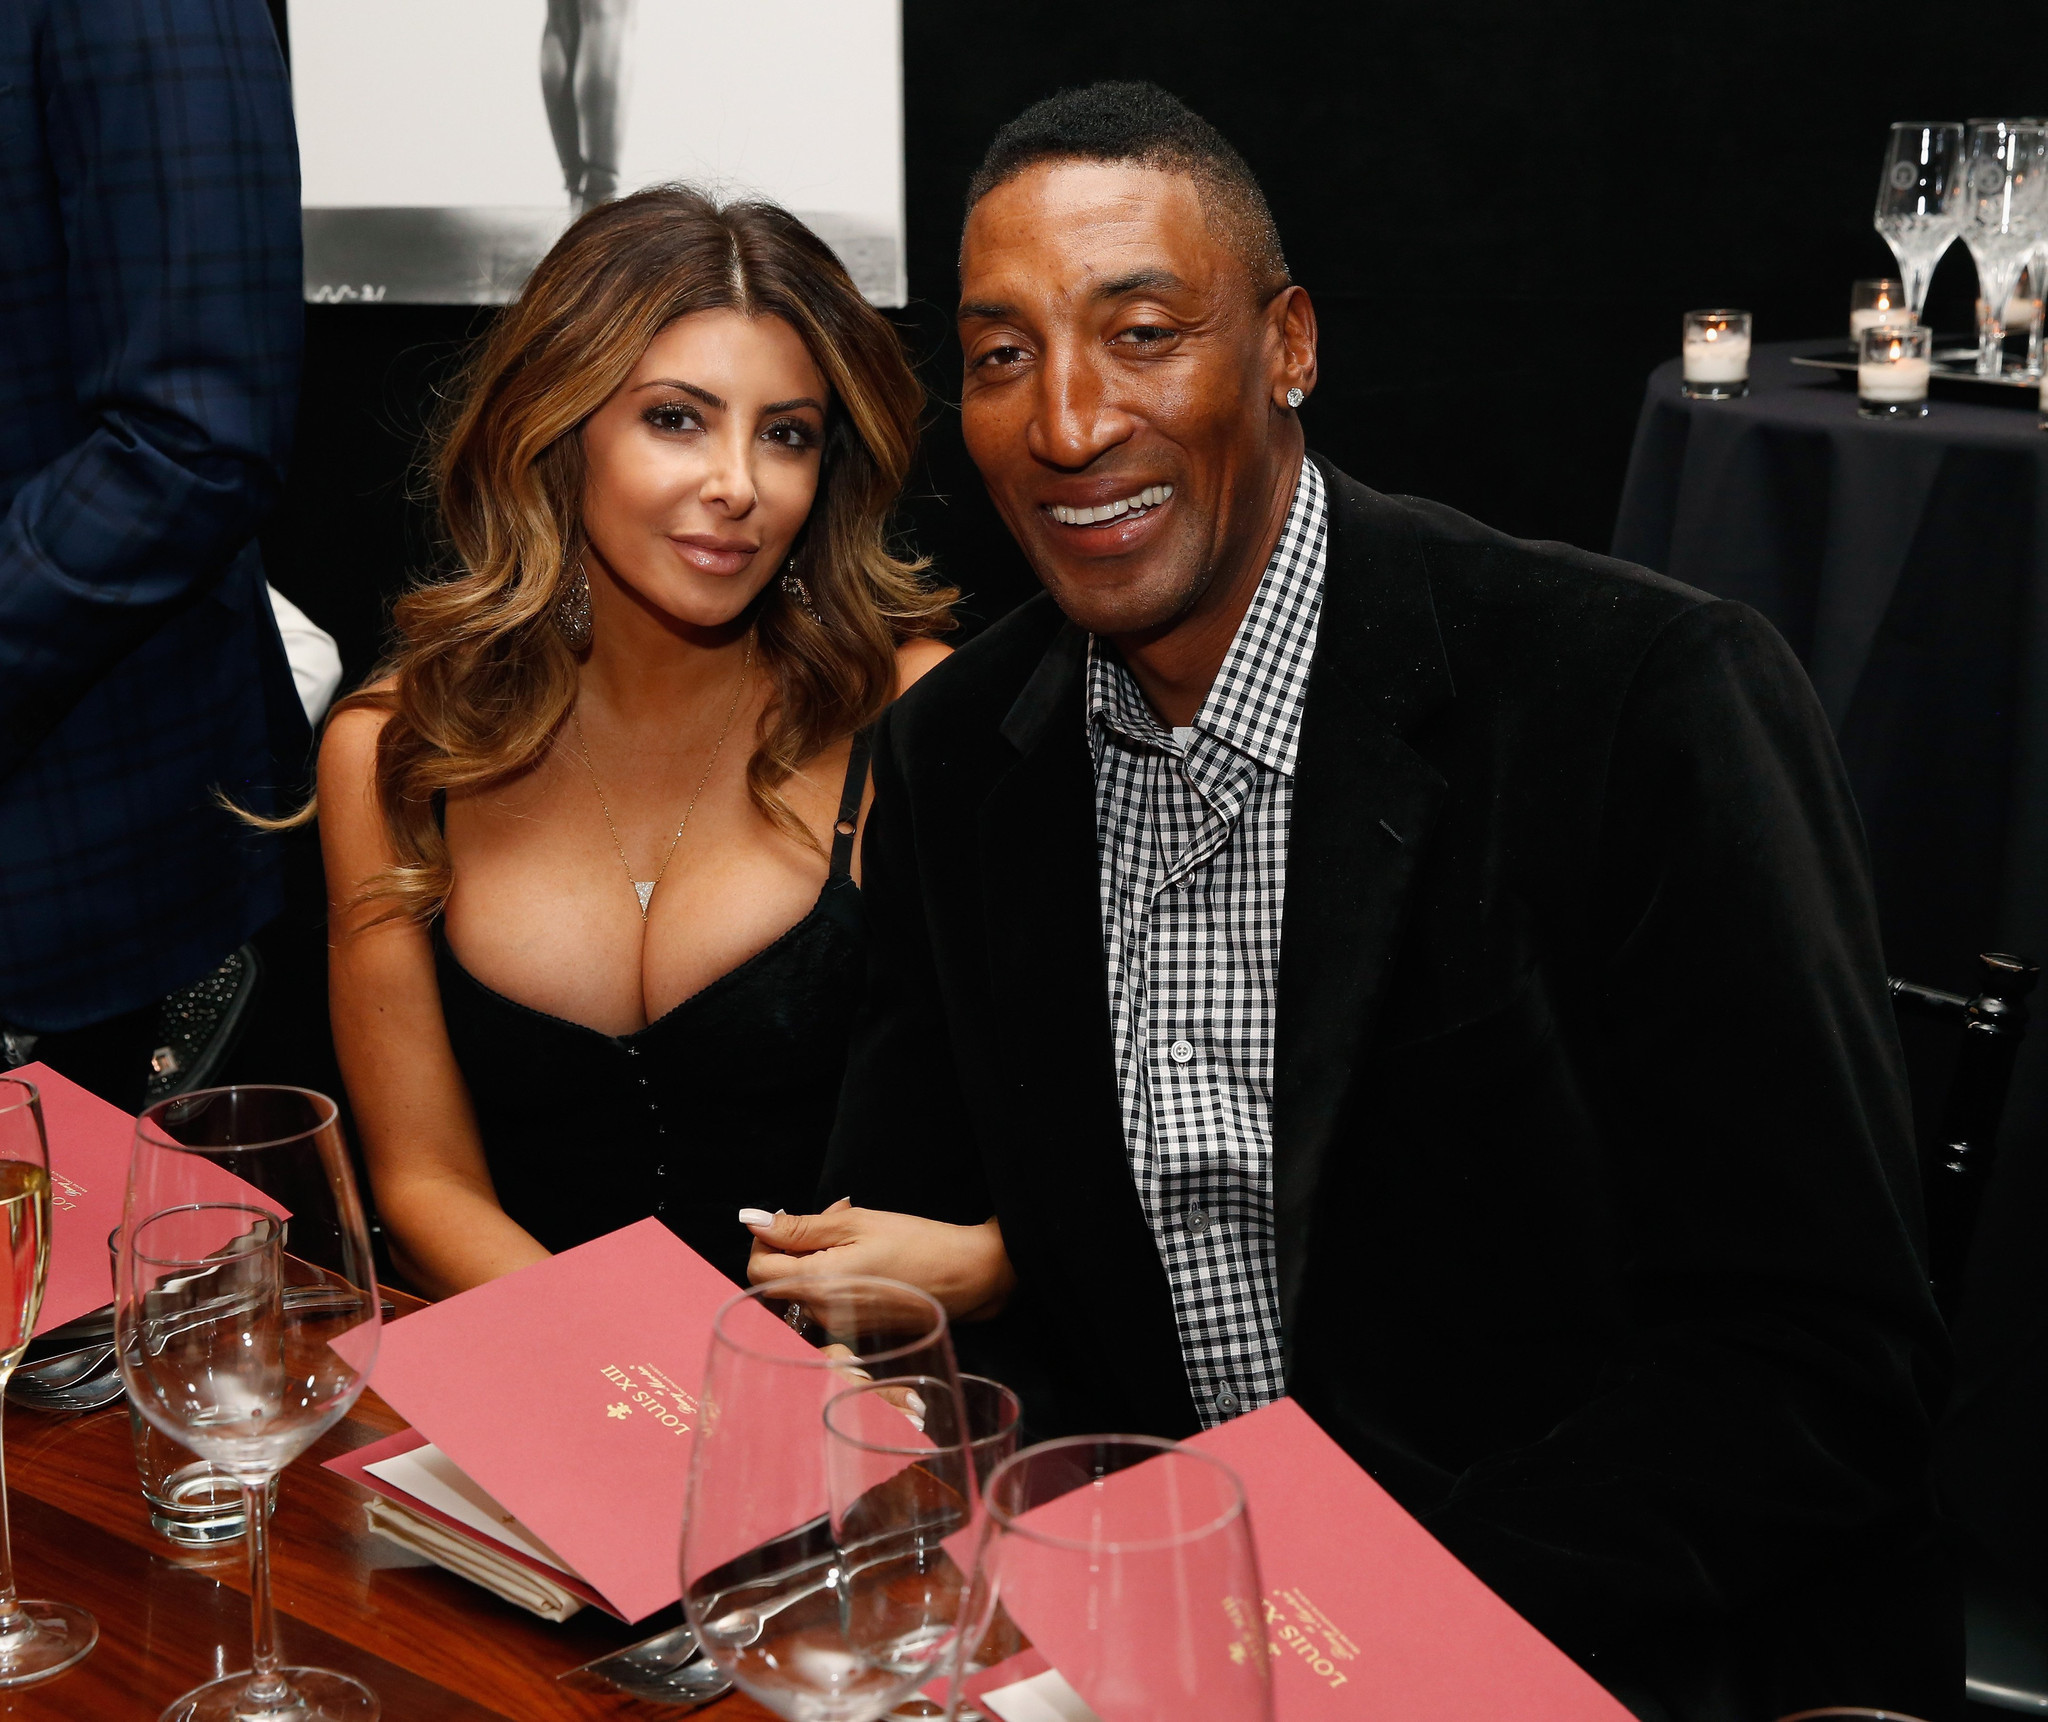 Pics Larsa Pippen naked (11 photo), Pussy, Cleavage, Feet, braless 2018